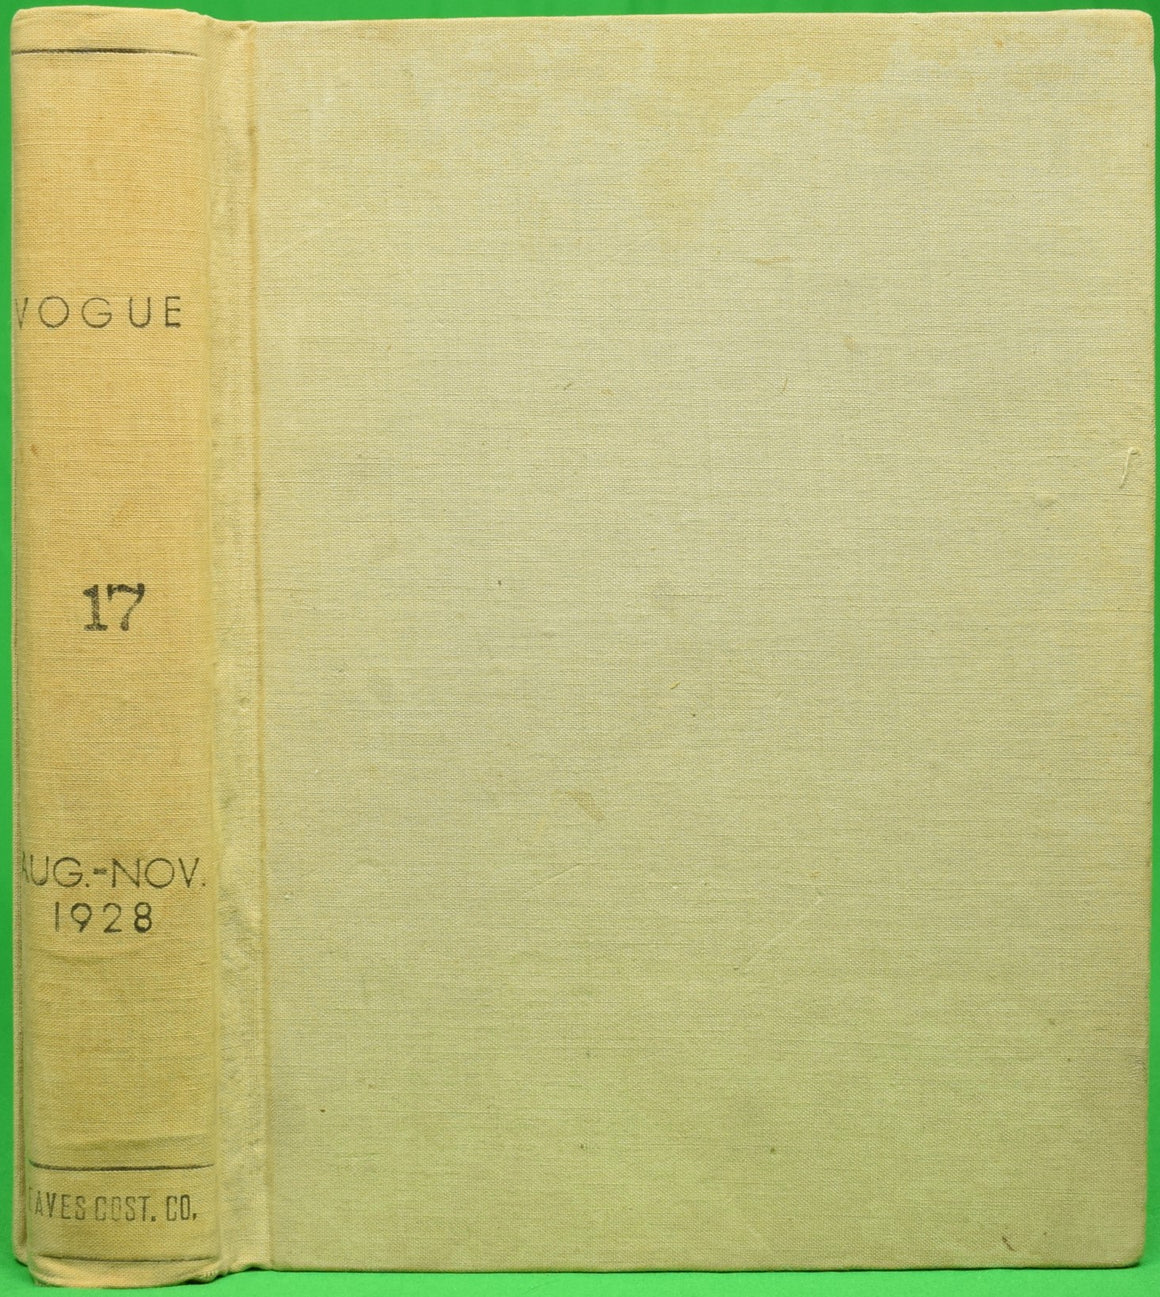 """Vogue 17 Aug.-Nov. 1928"" 4 Bound Issues"